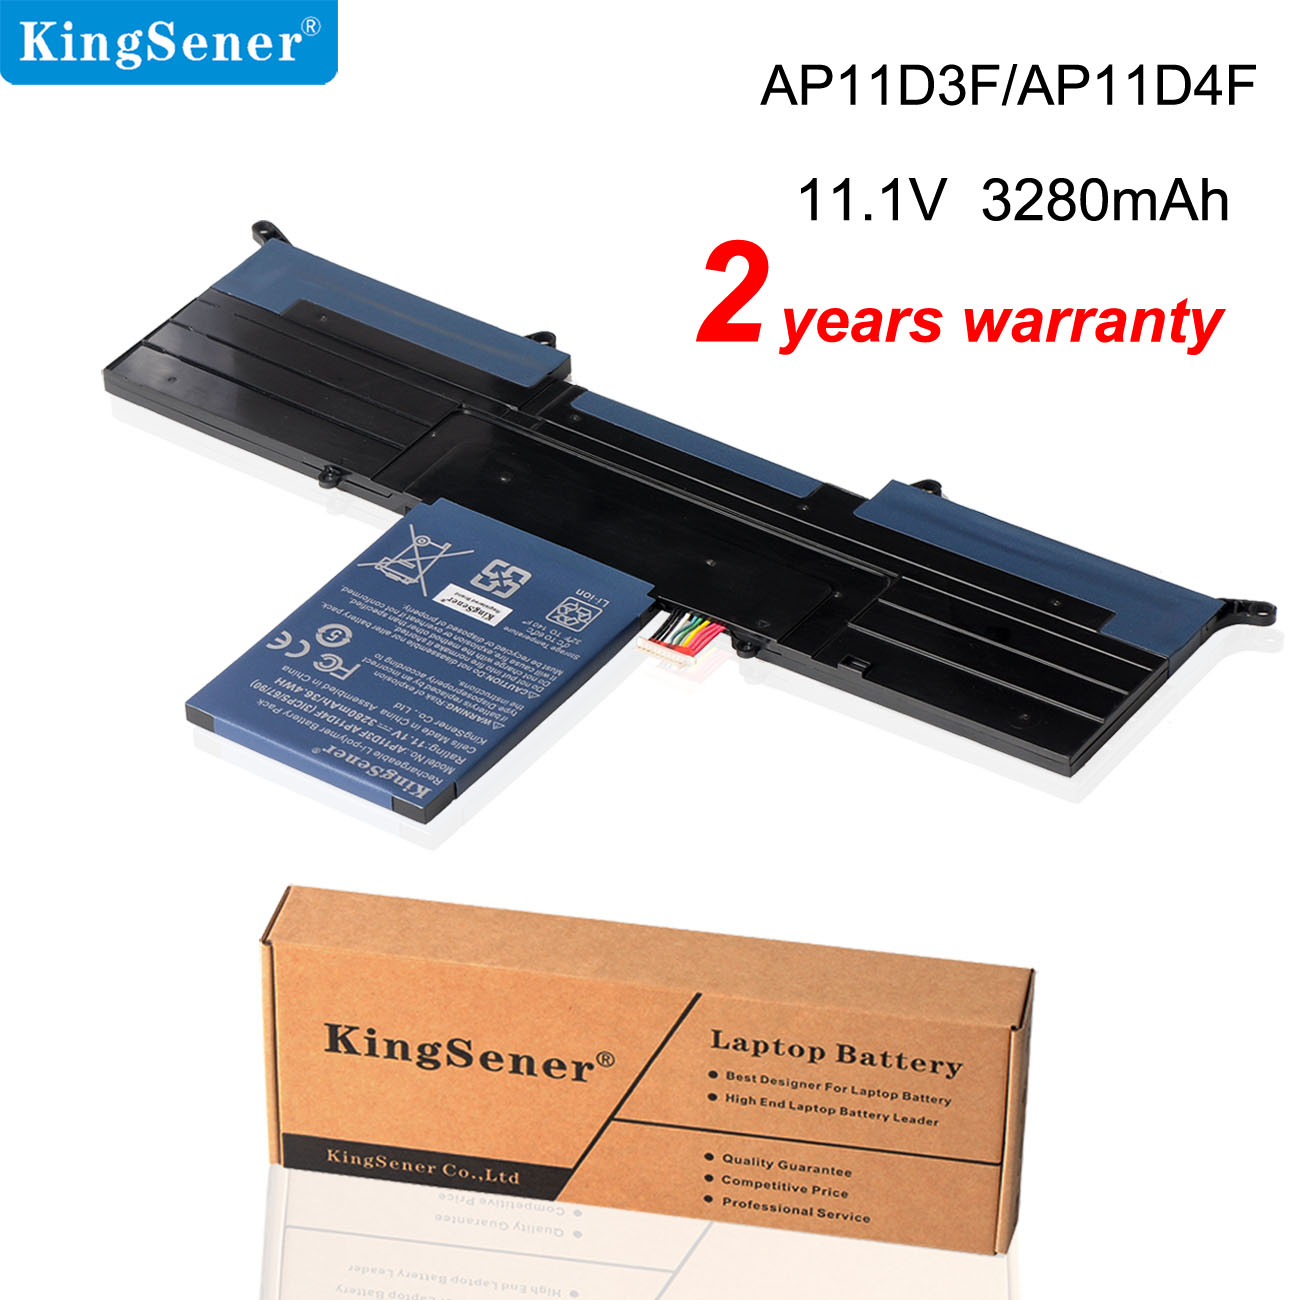 KingSener New <font><b>AP11D3F</b></font> AP11D4F Laptop Battery For Acer Aspire S3 S3-951 S3-391 MS2346 3ICP5/65/88 3ICP5/67/90 11.1V 3280mAh image